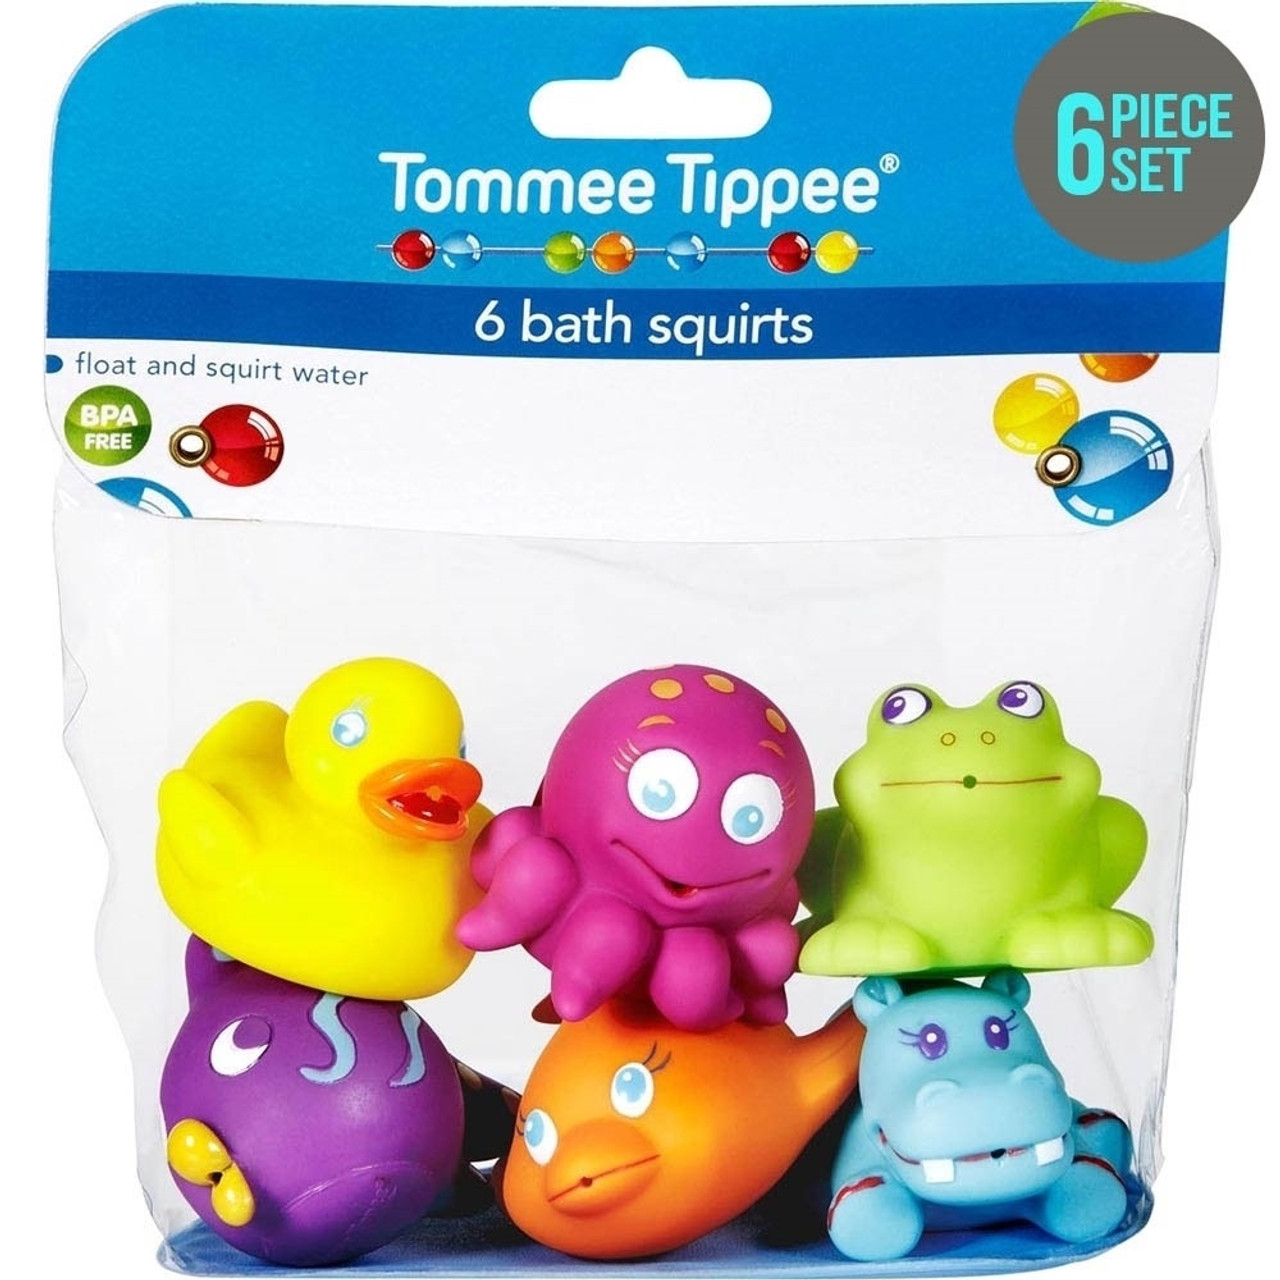 Tommee Tippee 6 Bath Squirts Toys